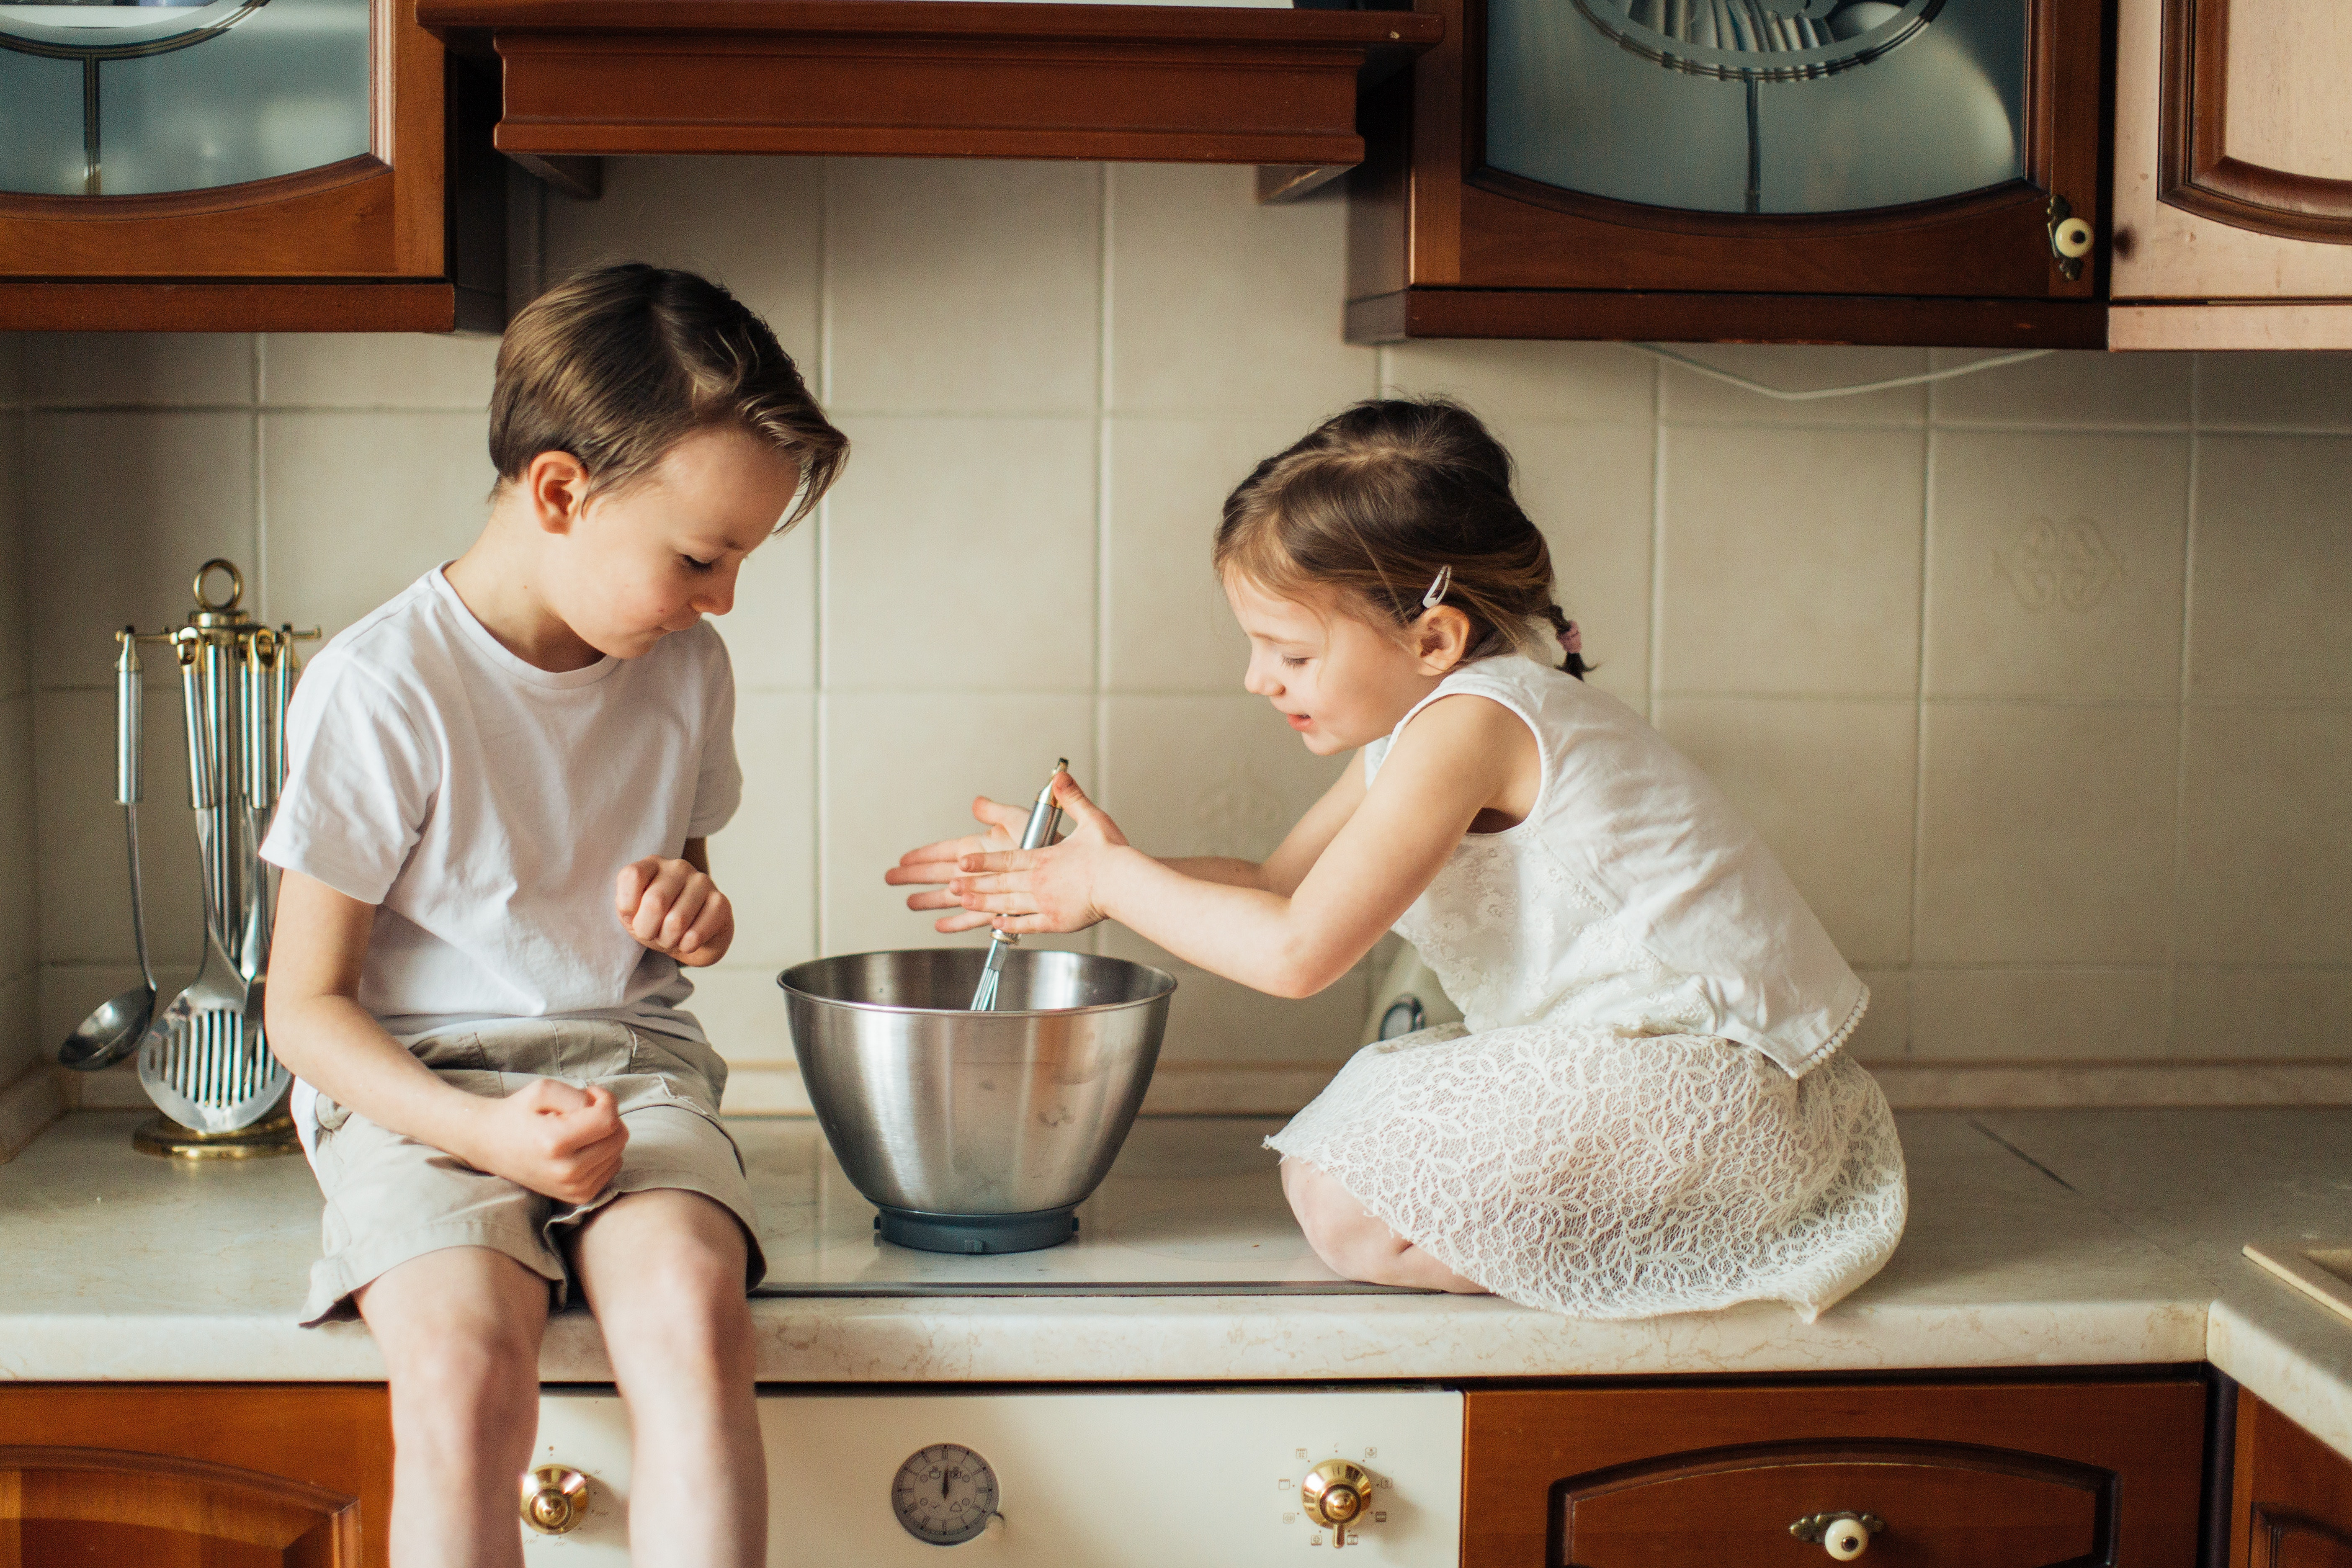 a young boy and a young girl sitting on a kitchen bench with a mixing bowl.